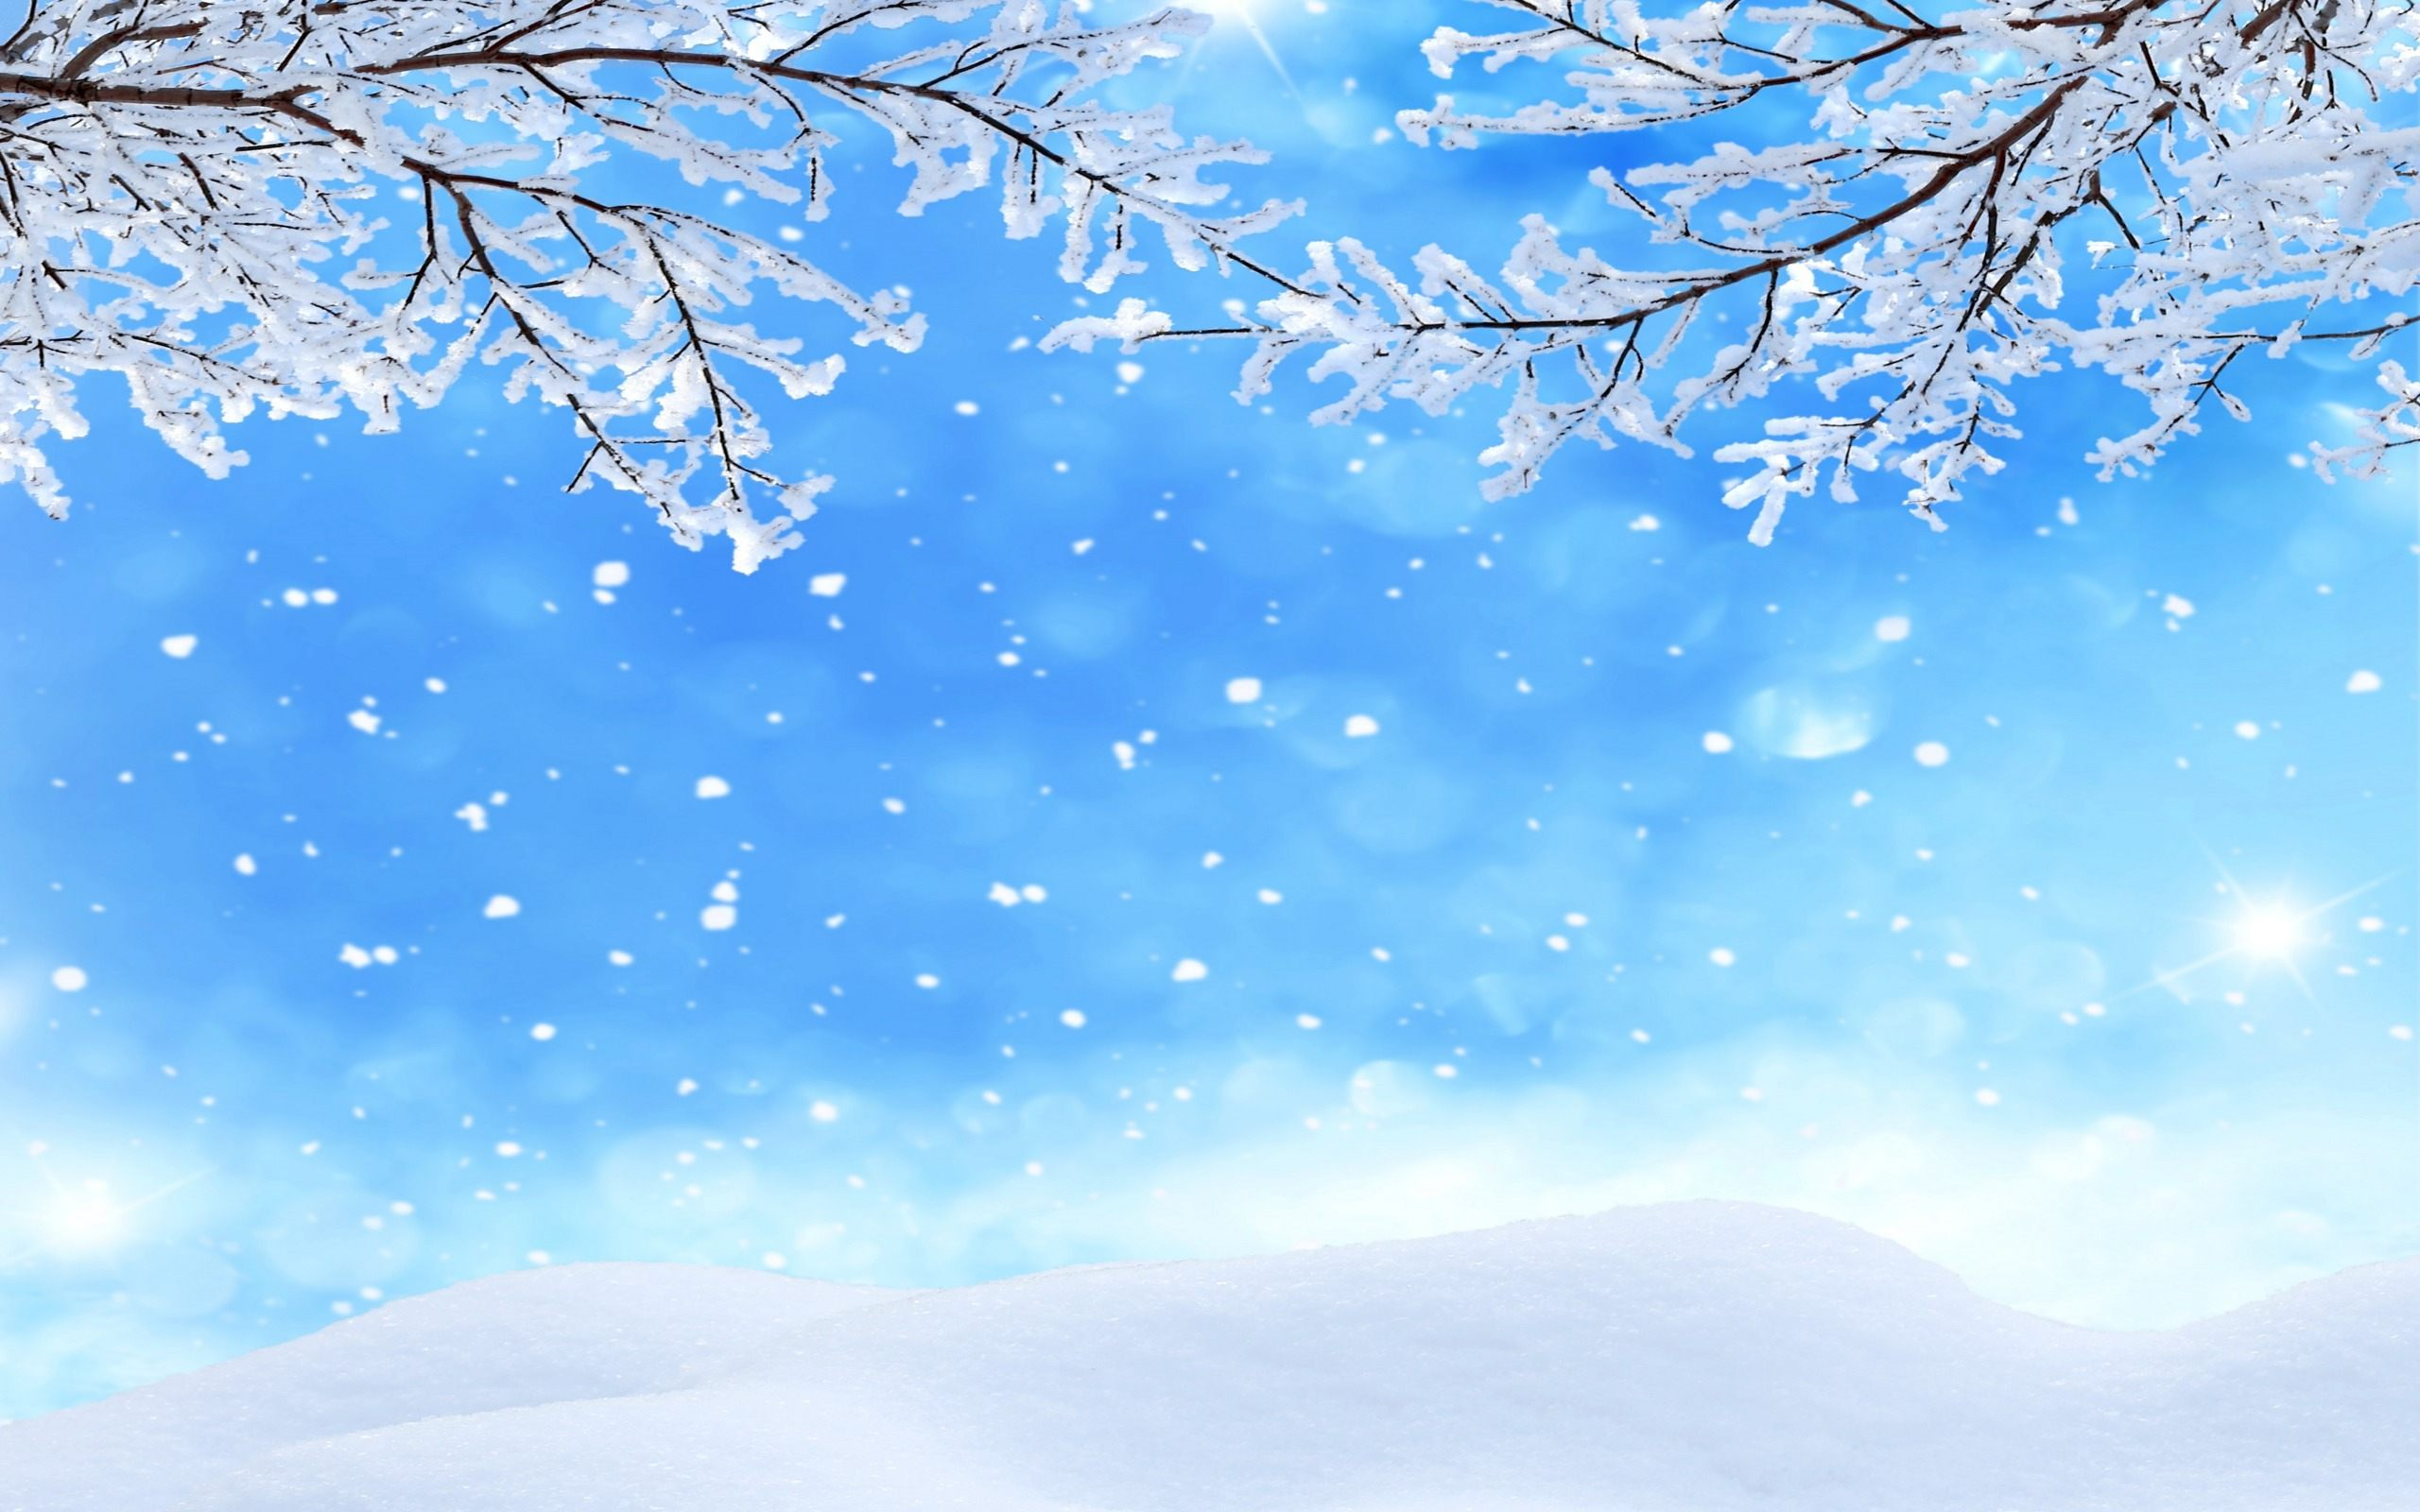 free winter background images.